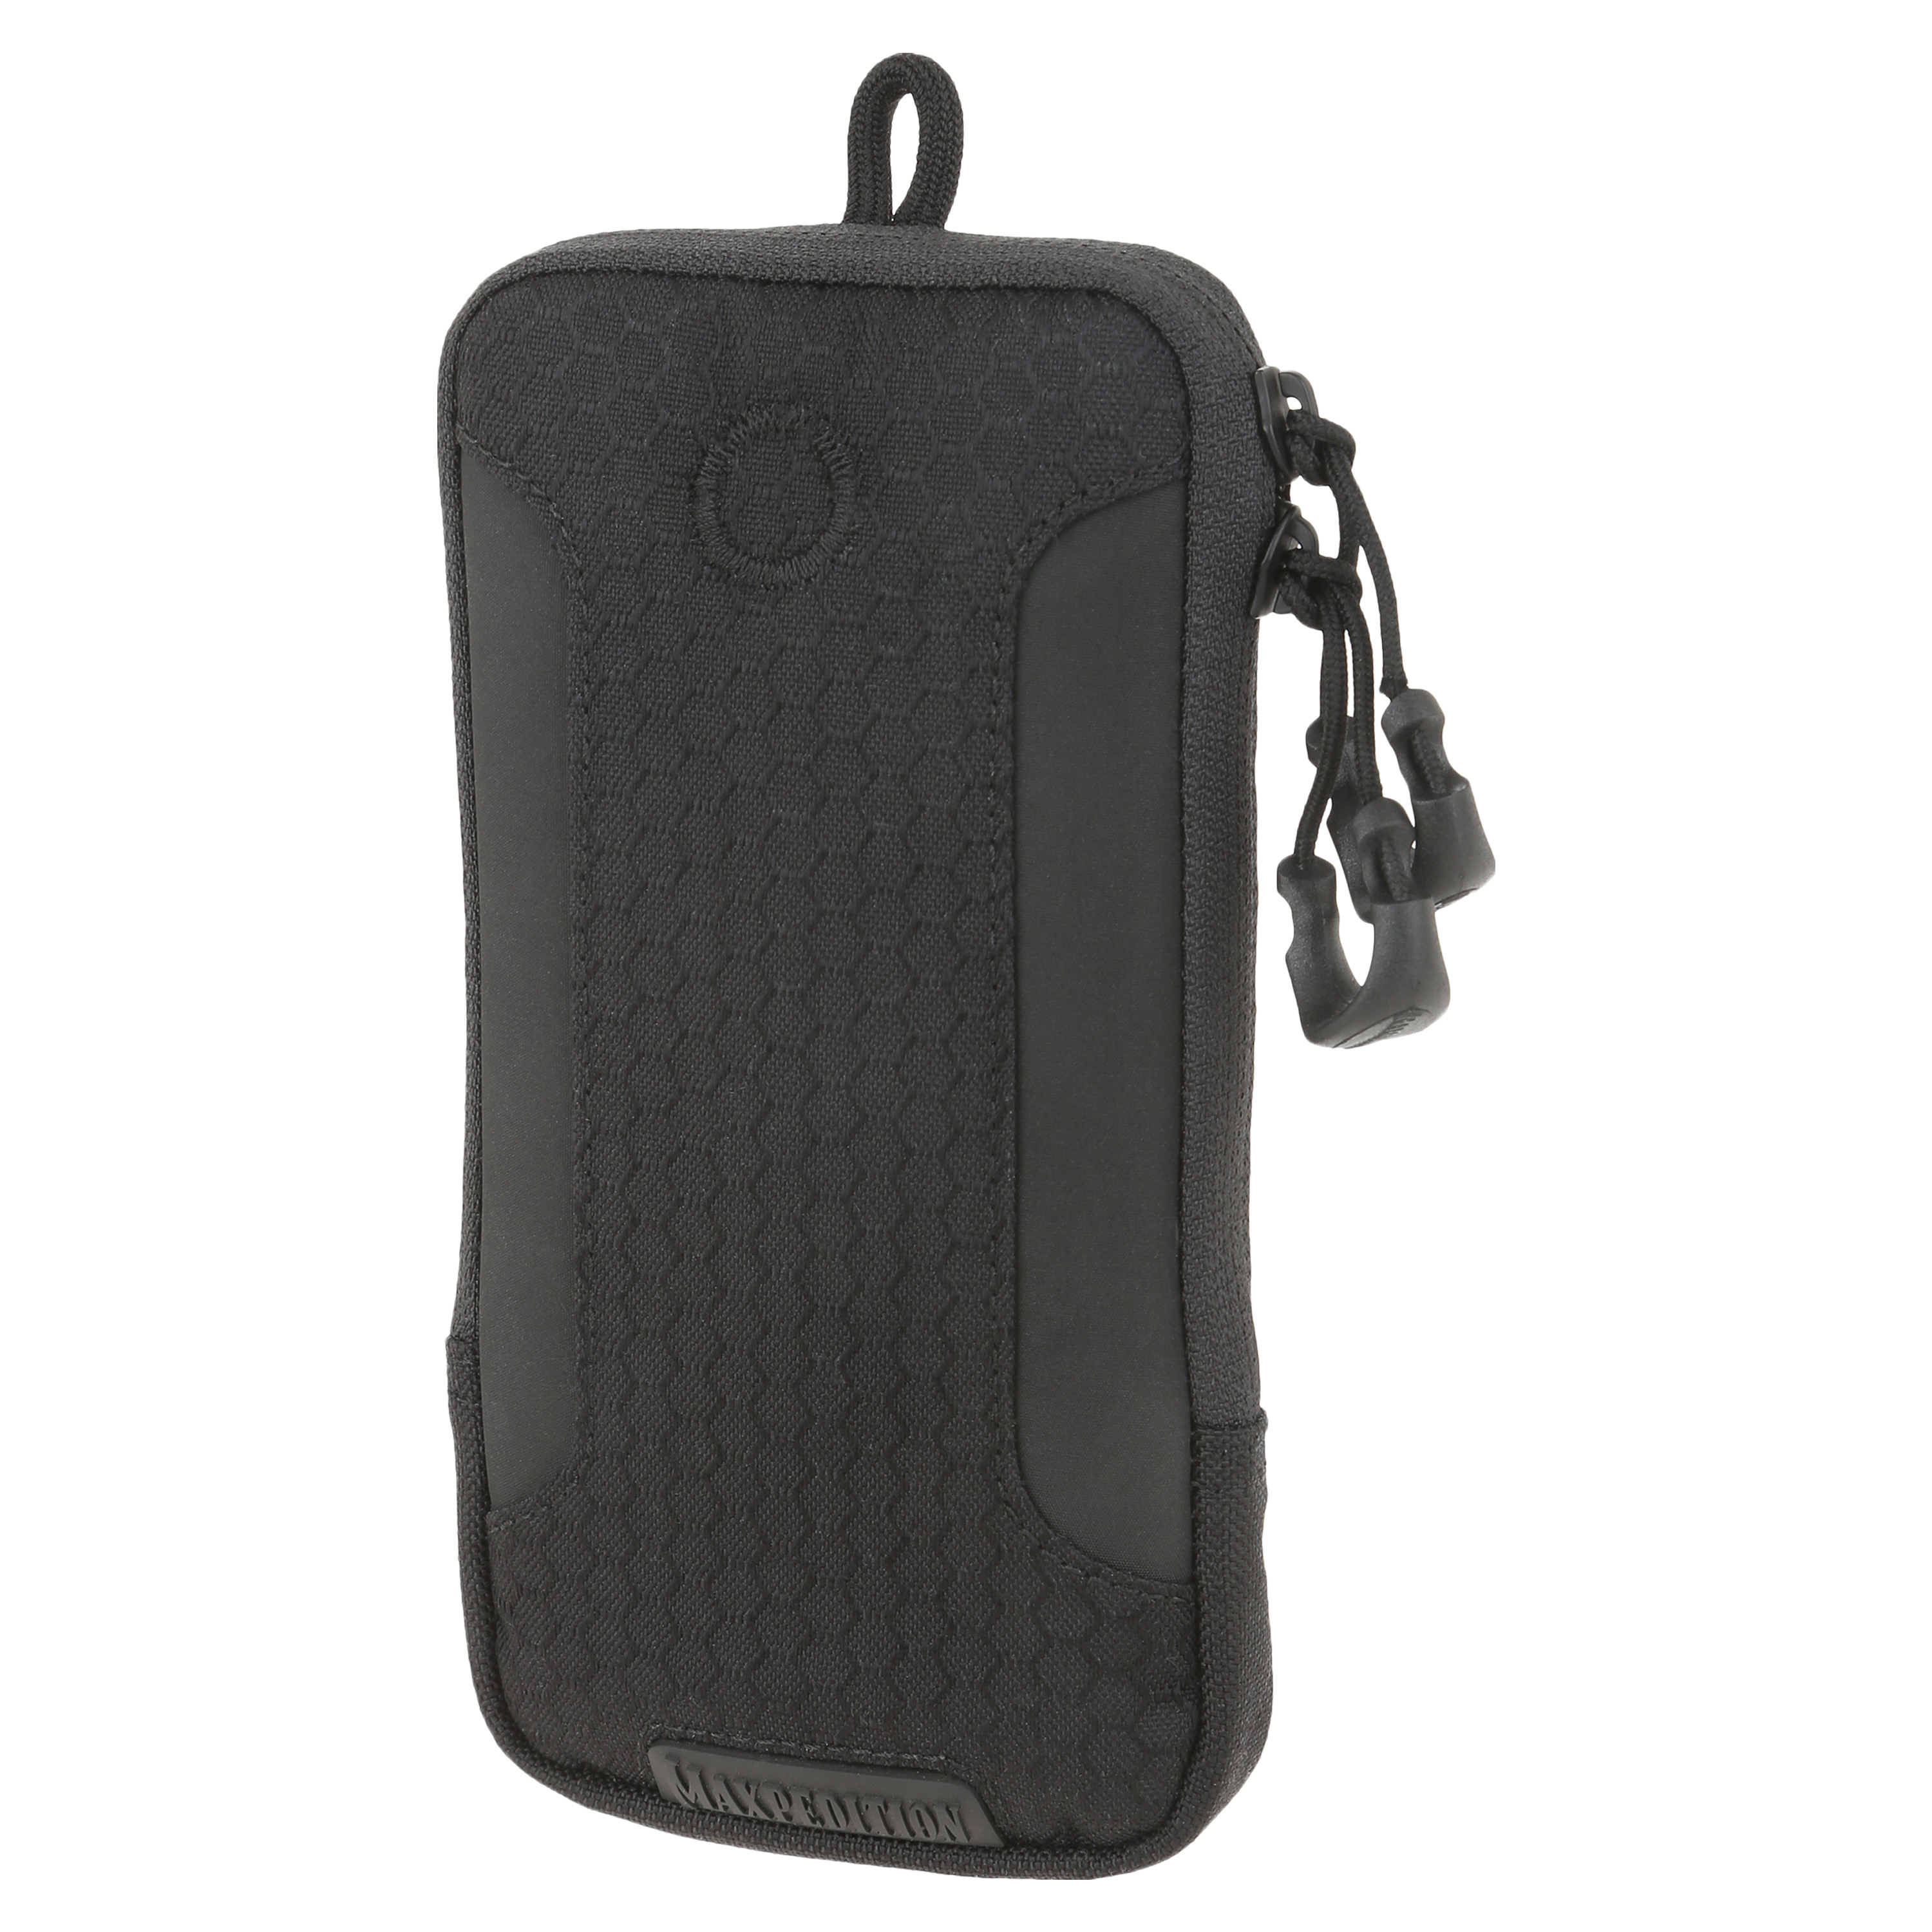 Maxpedition iPhone 6/6S/7 Plus Pouch black